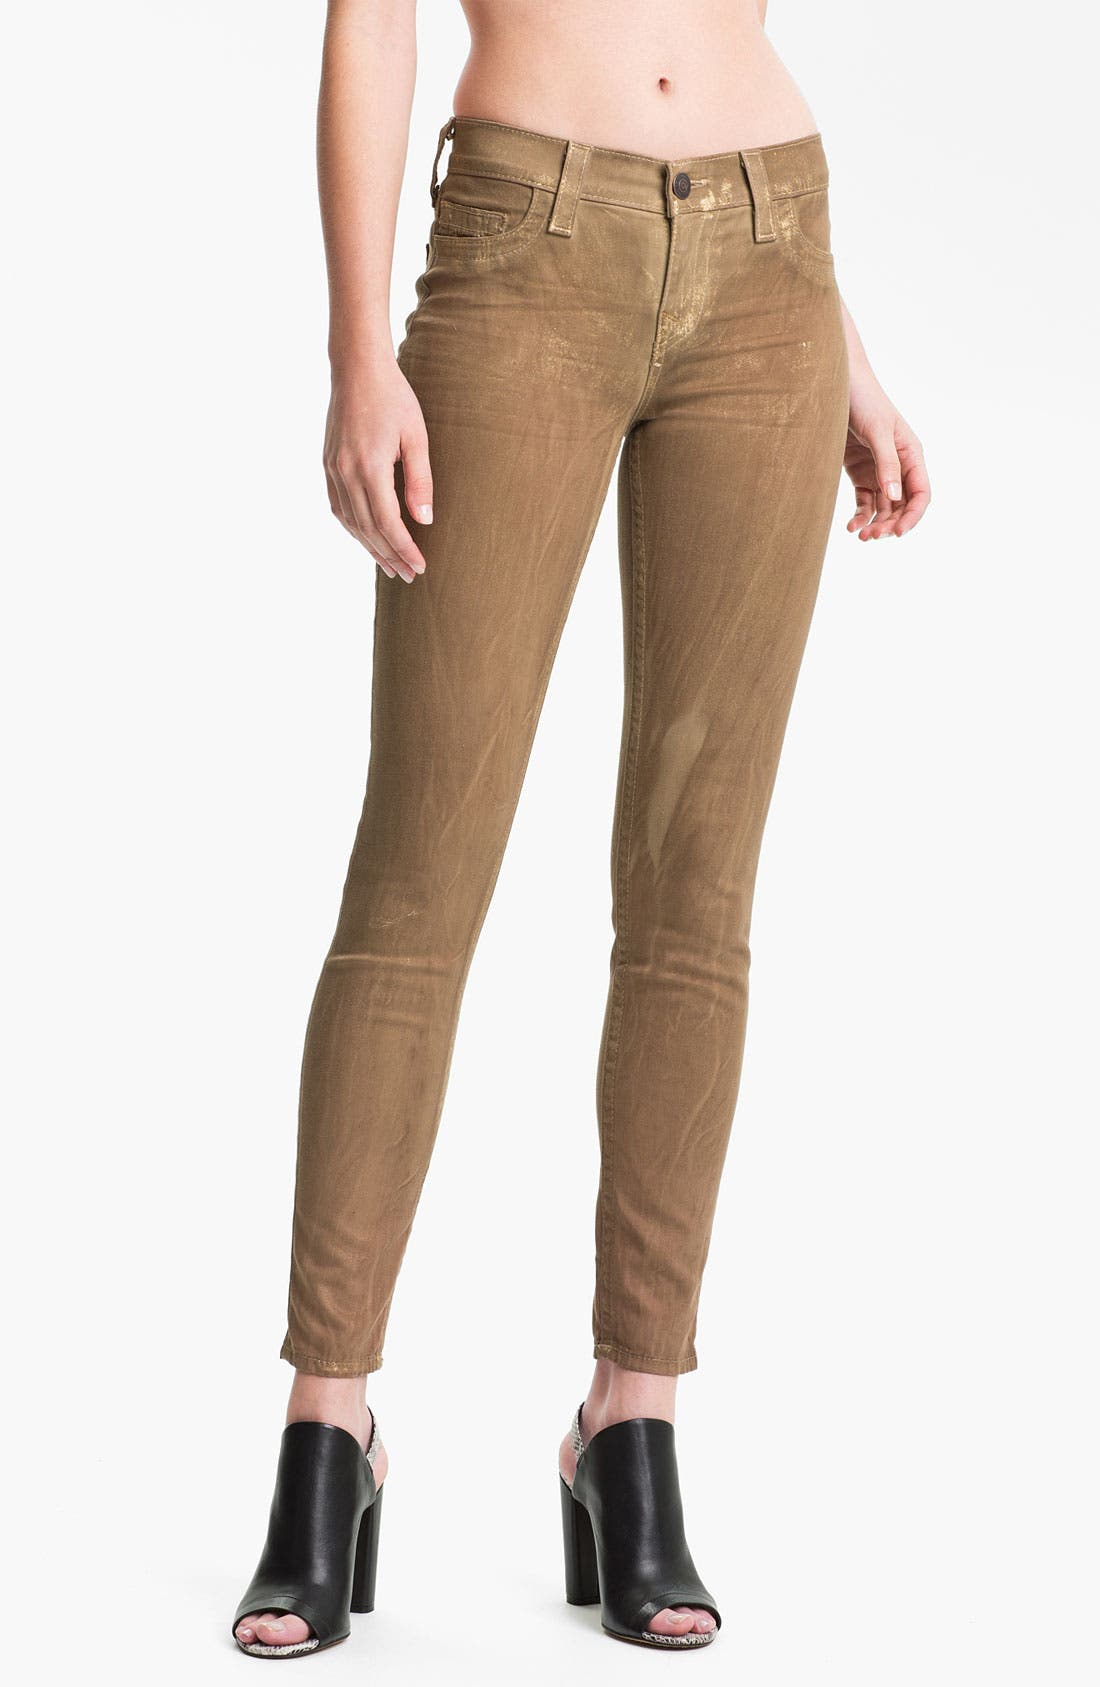 Alternate Image 1 Selected - True Religion Brand Jeans 'Halle' Skinny Stretch Jeans (Metallic Gold)